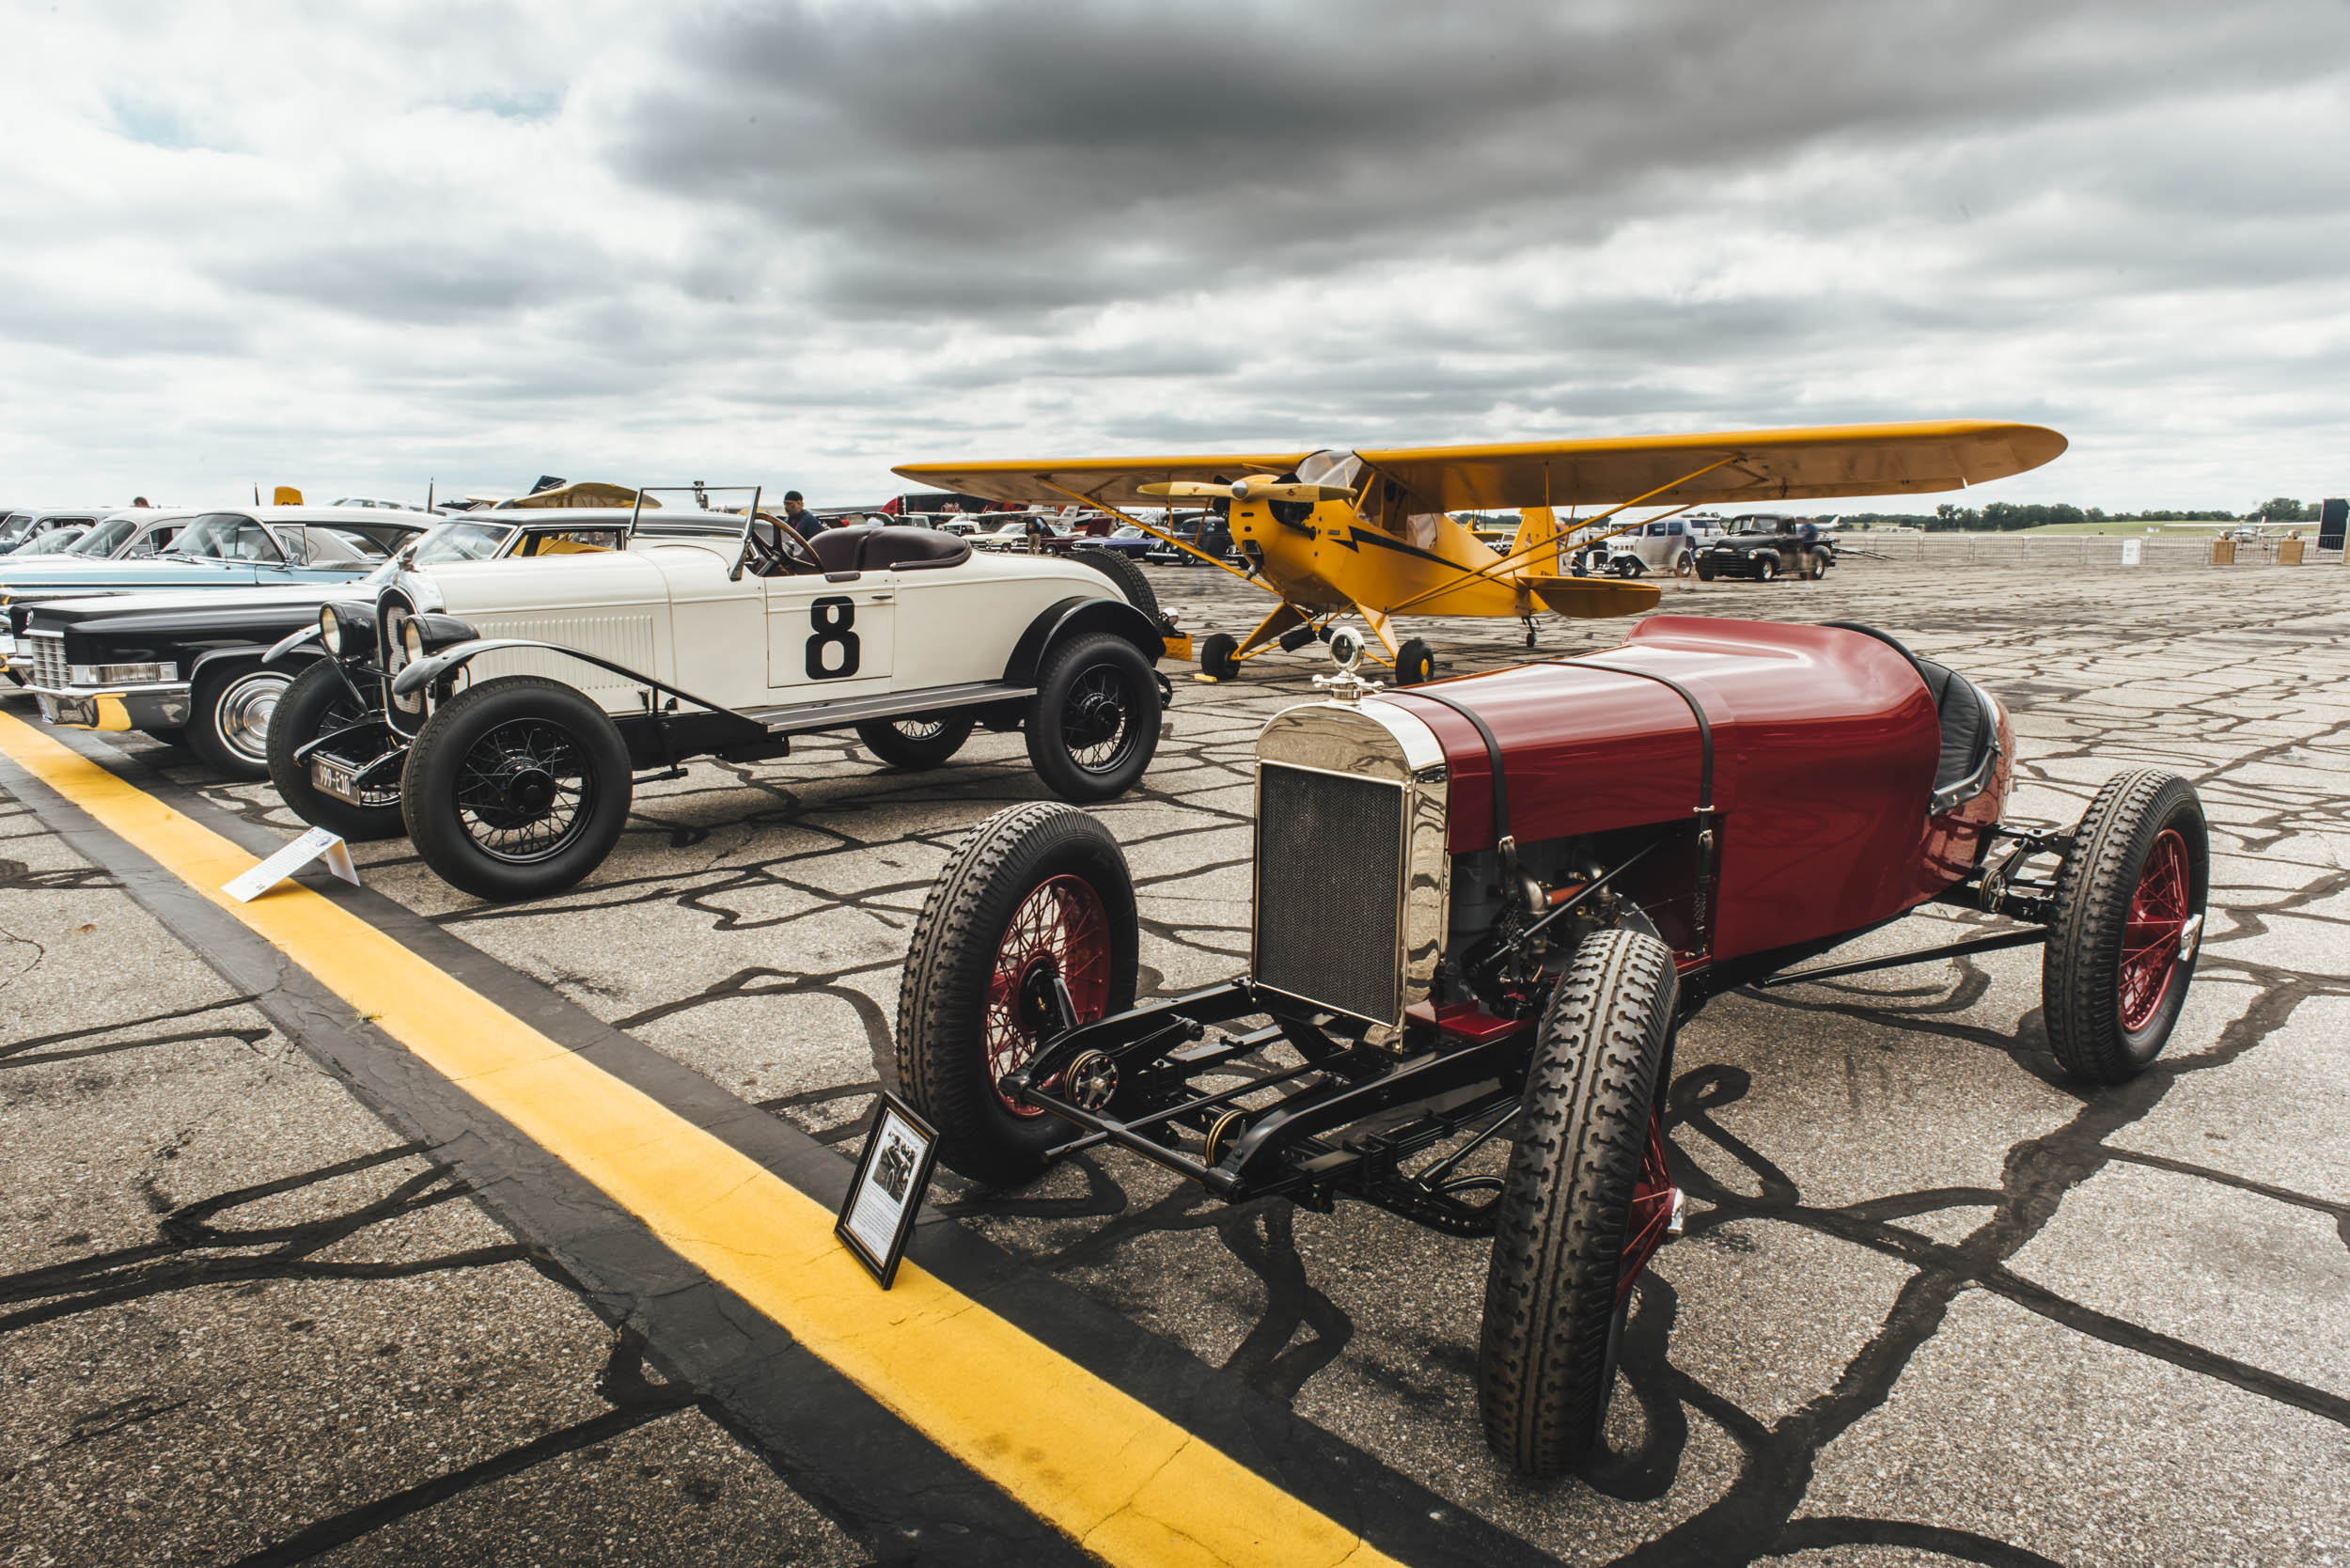 Wings and Wheels show at Willow Run Airport